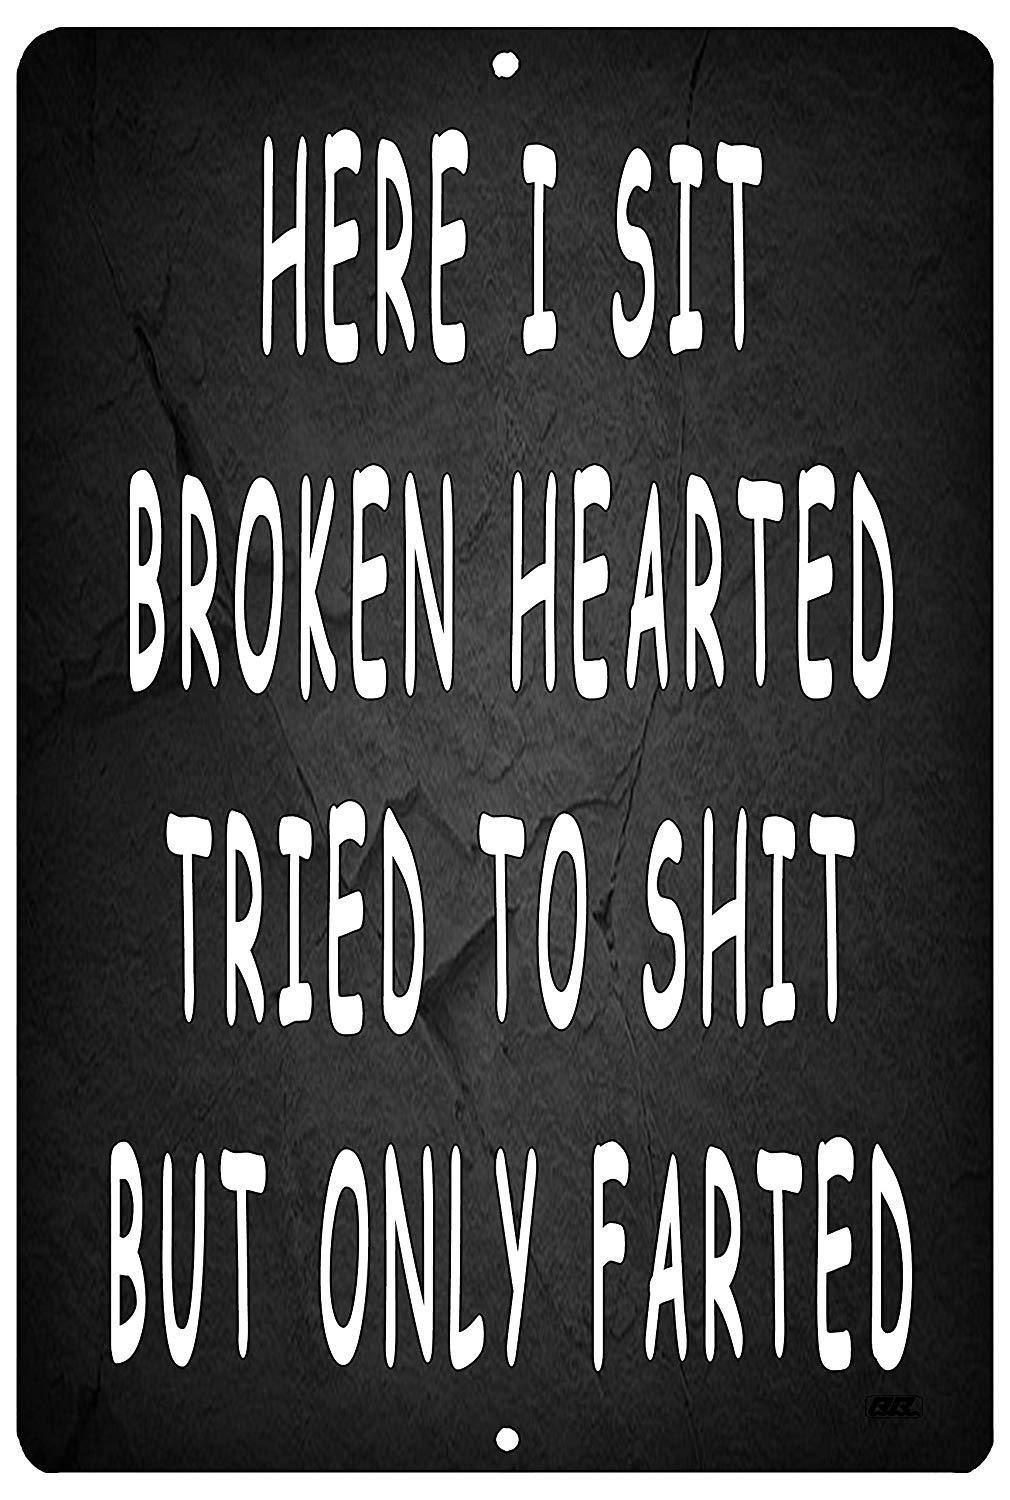 Funny Sarcastic Metal Tin Sign Wall Decor Man Cave Bathroom Here I Sit Broken Hearted - Funny Signs - Rogue River Tactical  - Rogue River Tactical